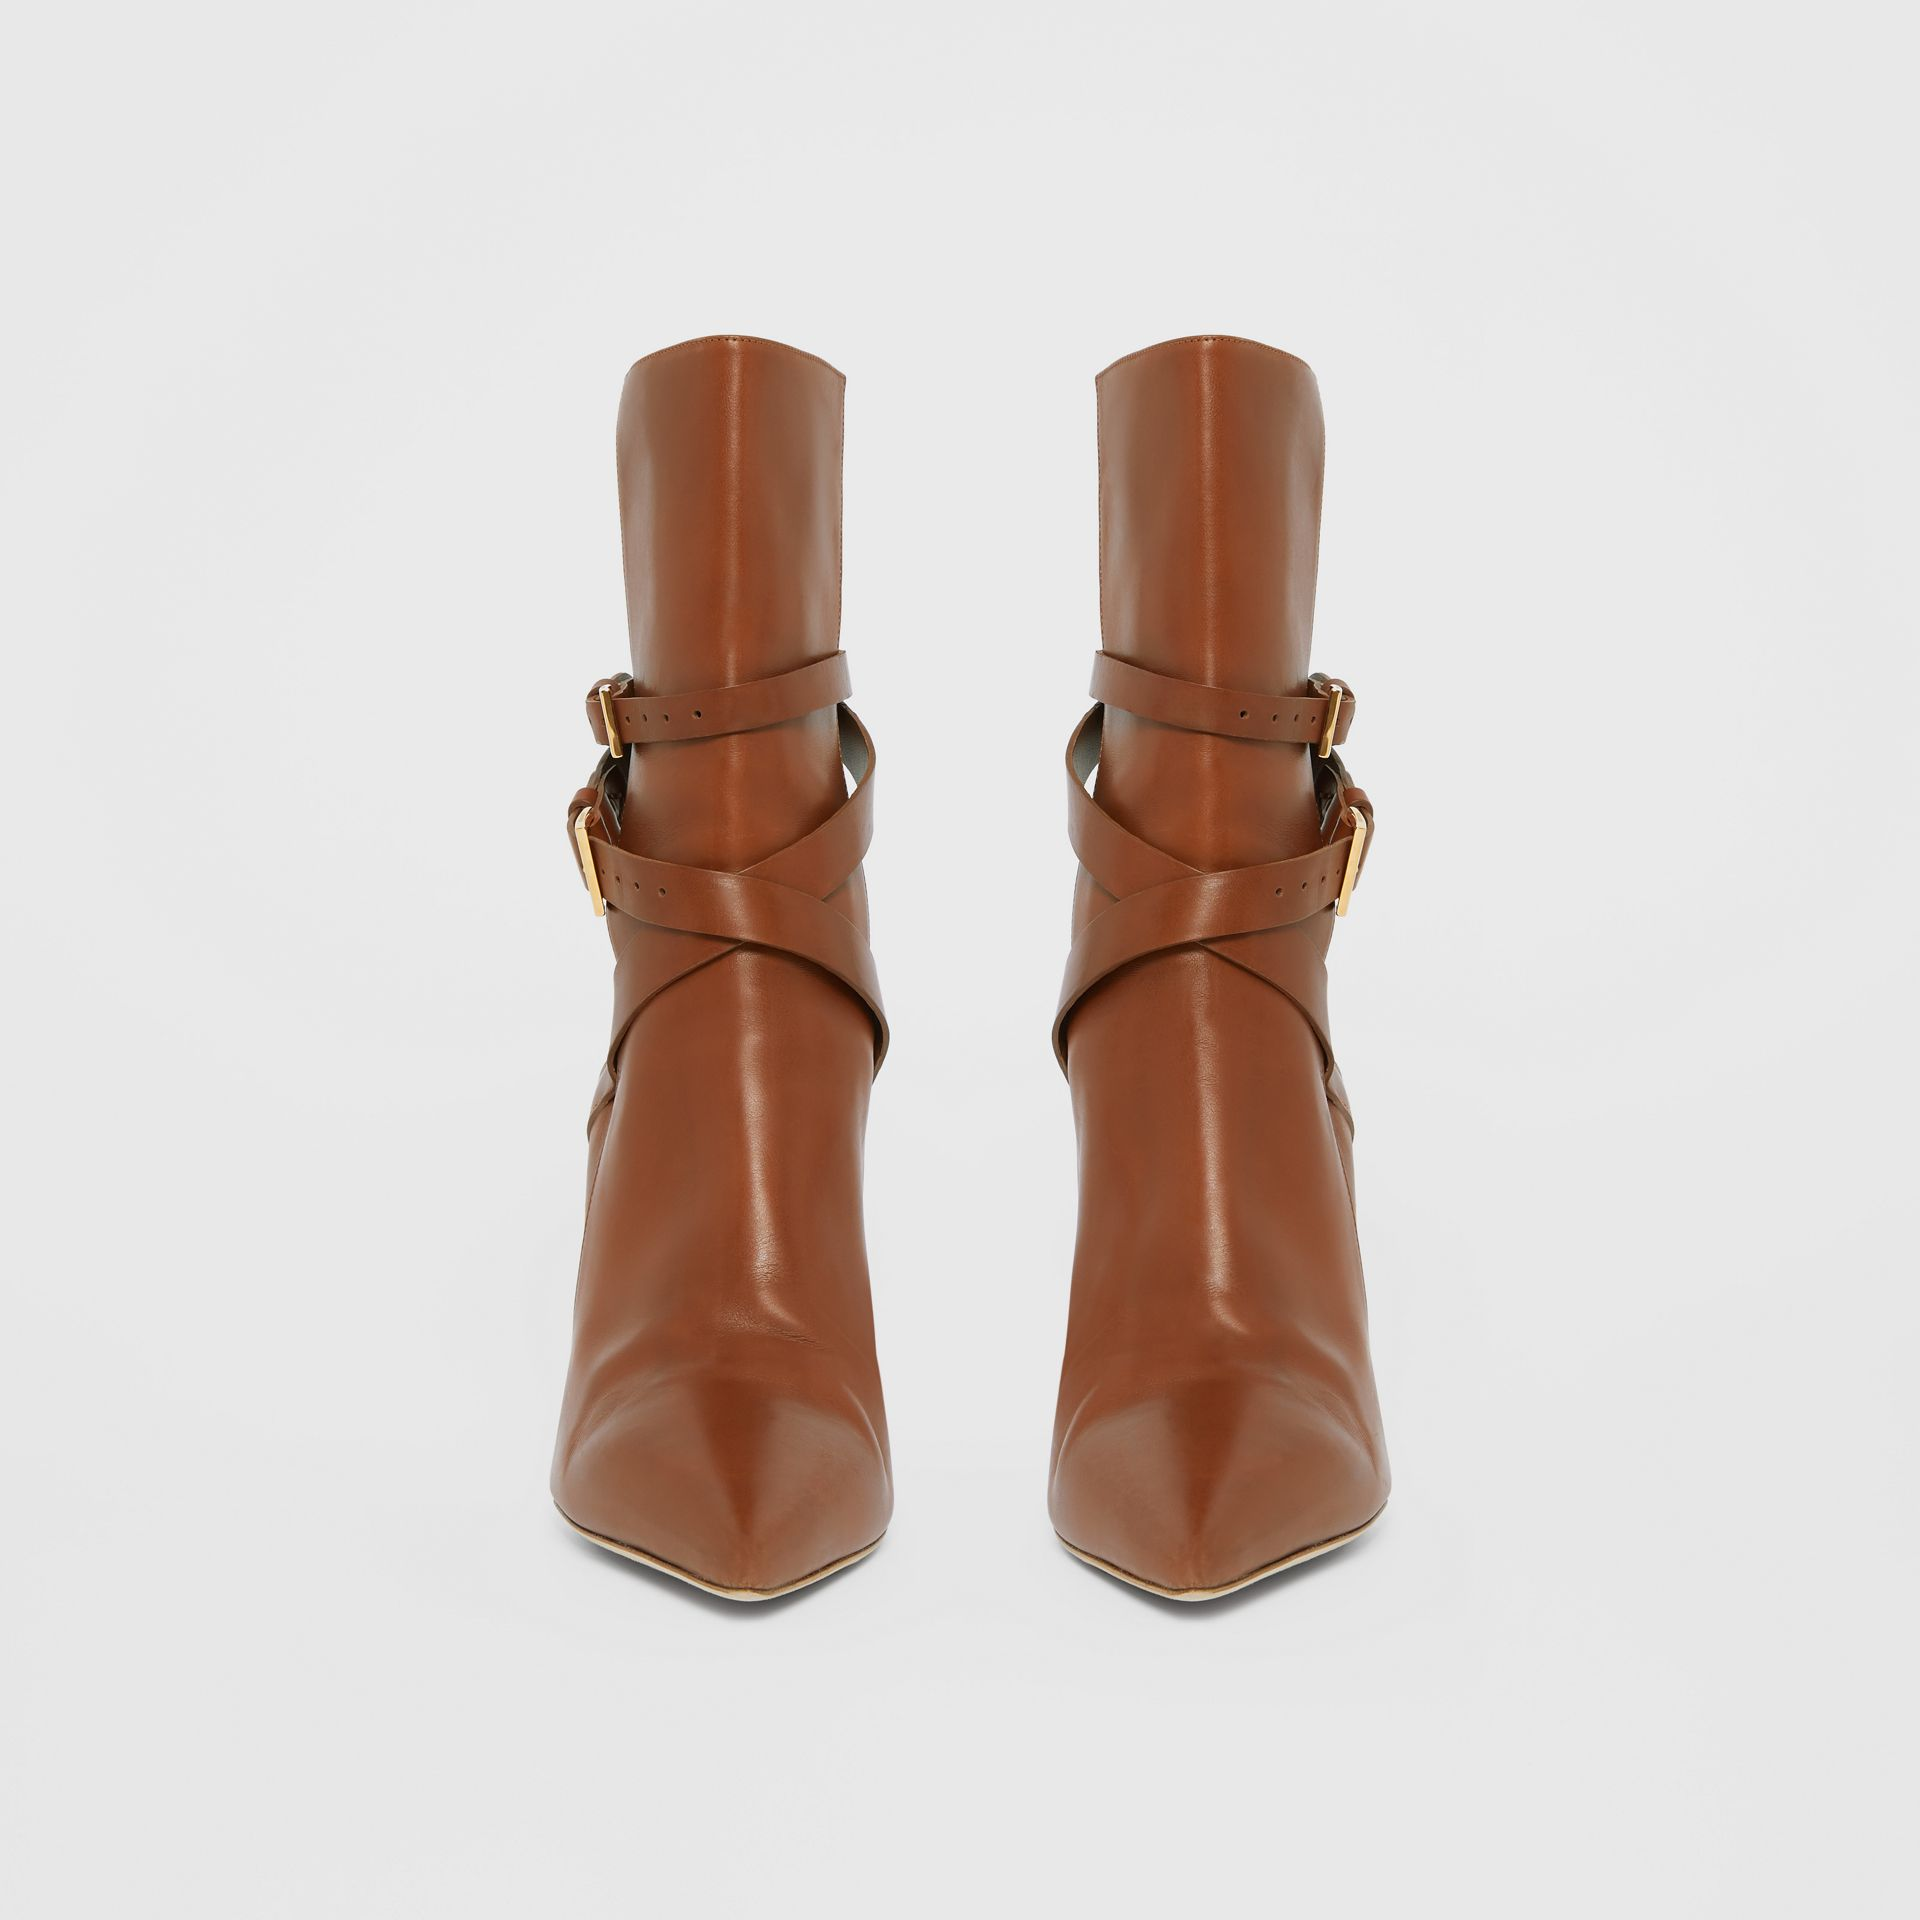 Strap Detail Leather Ankle Boots in Tan - Women | Burberry Hong Kong S.A.R - gallery image 3